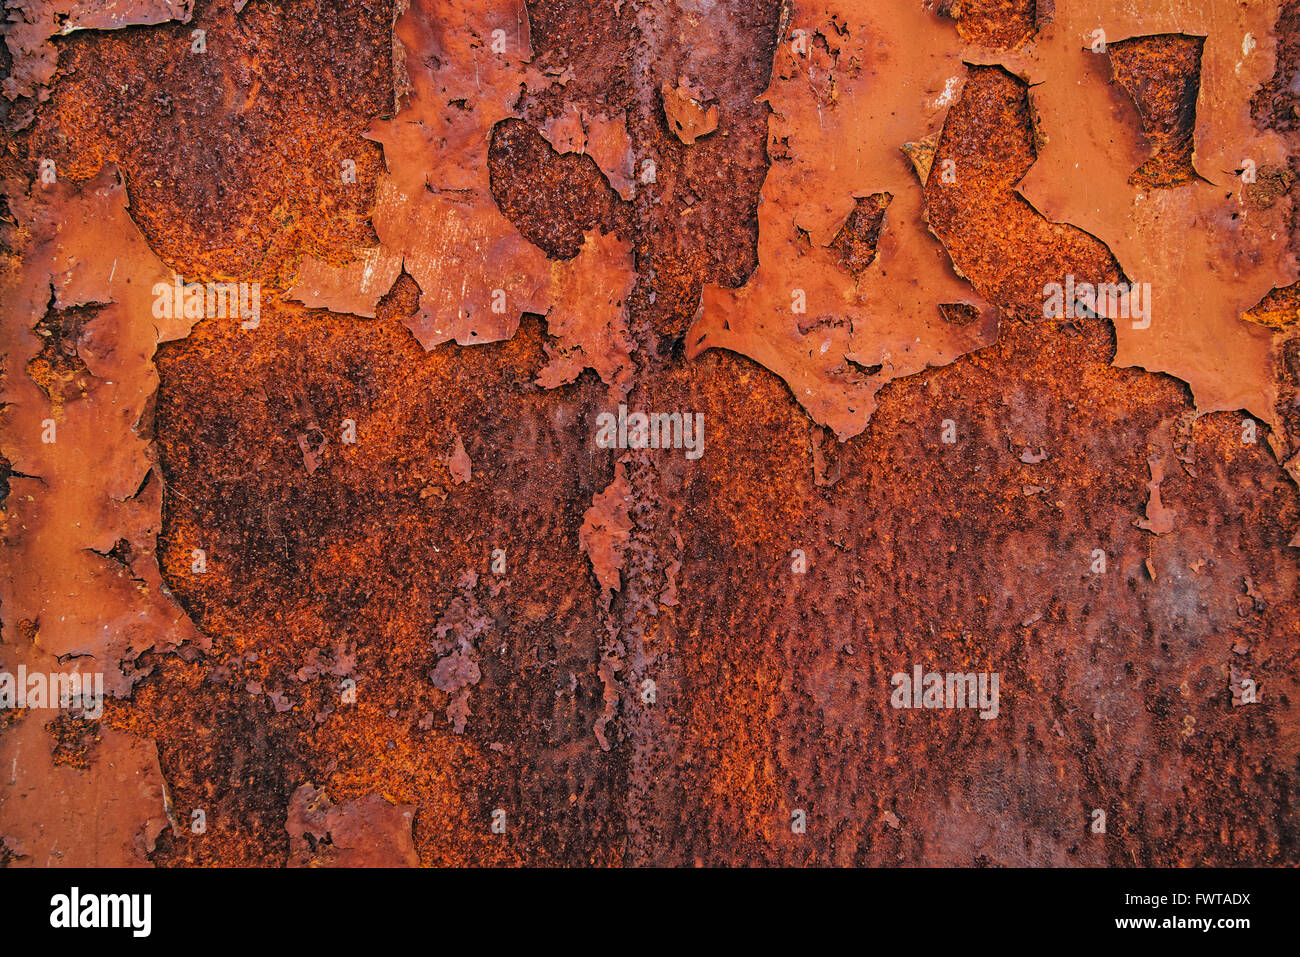 Corroded steel iron plate texture, oxidized red metallic surface - Stock Image